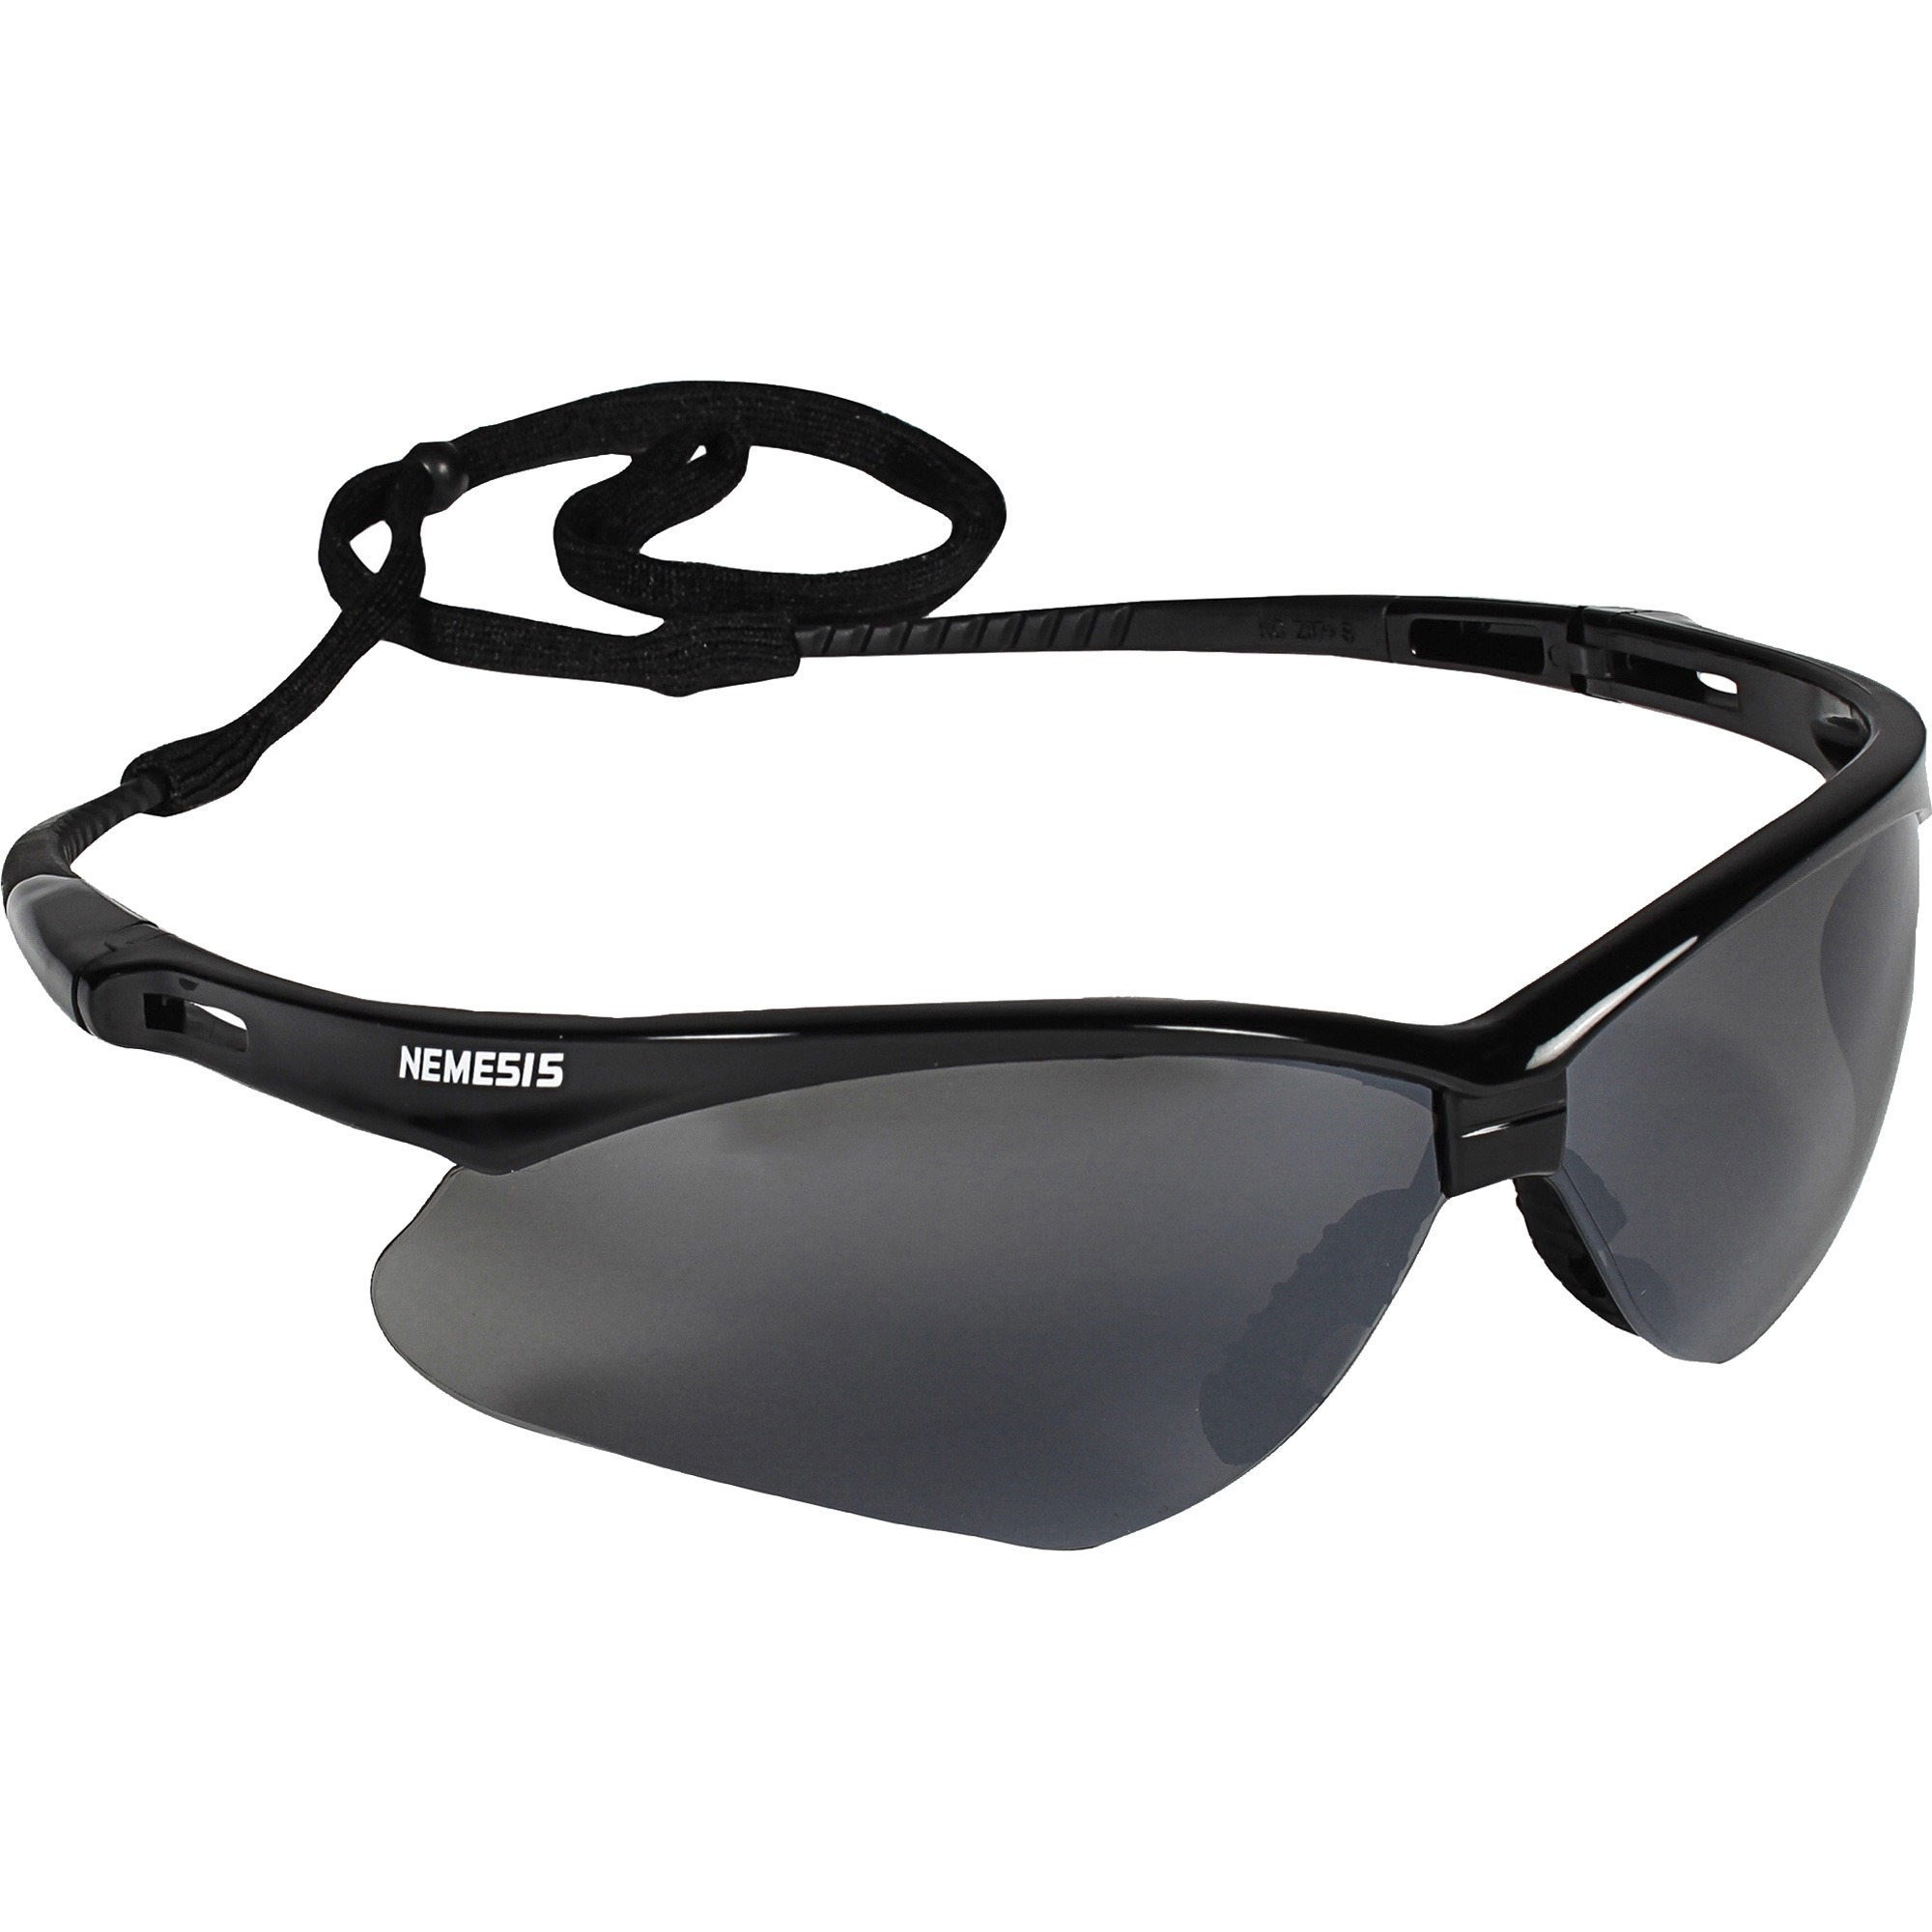 Kimberly-clark Corporation Jackson Safety V30 Nemesis Safety Eyewear - Lightweight, Flexible, Comfortable, Scratch Resistant - Ultraviolet Protection - Polycarbonate Lens - Smoke, Black - 1 Each